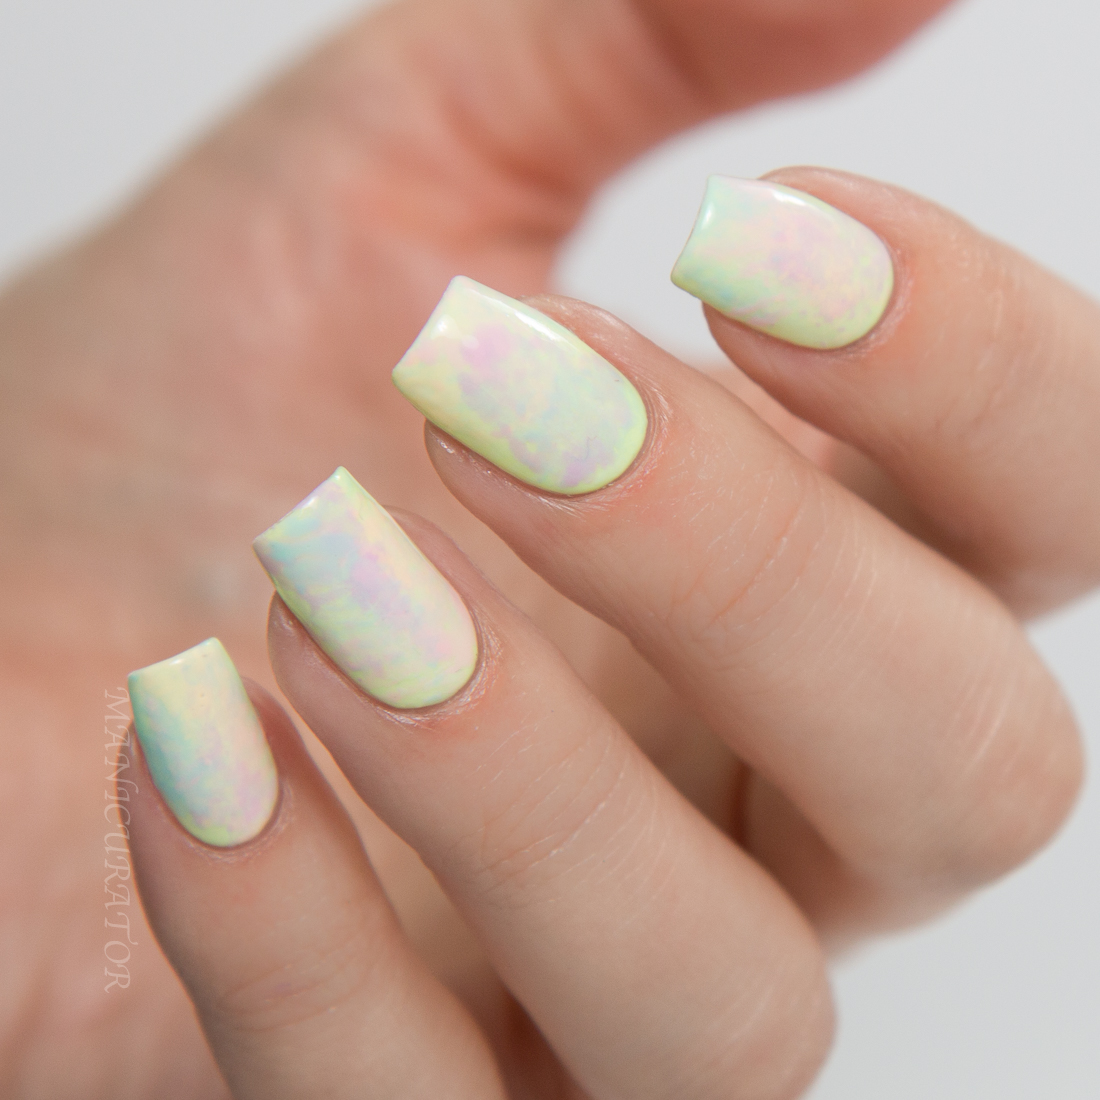 manicurator: Poise Thin Shape Pads - Free Sample - So You Can ...